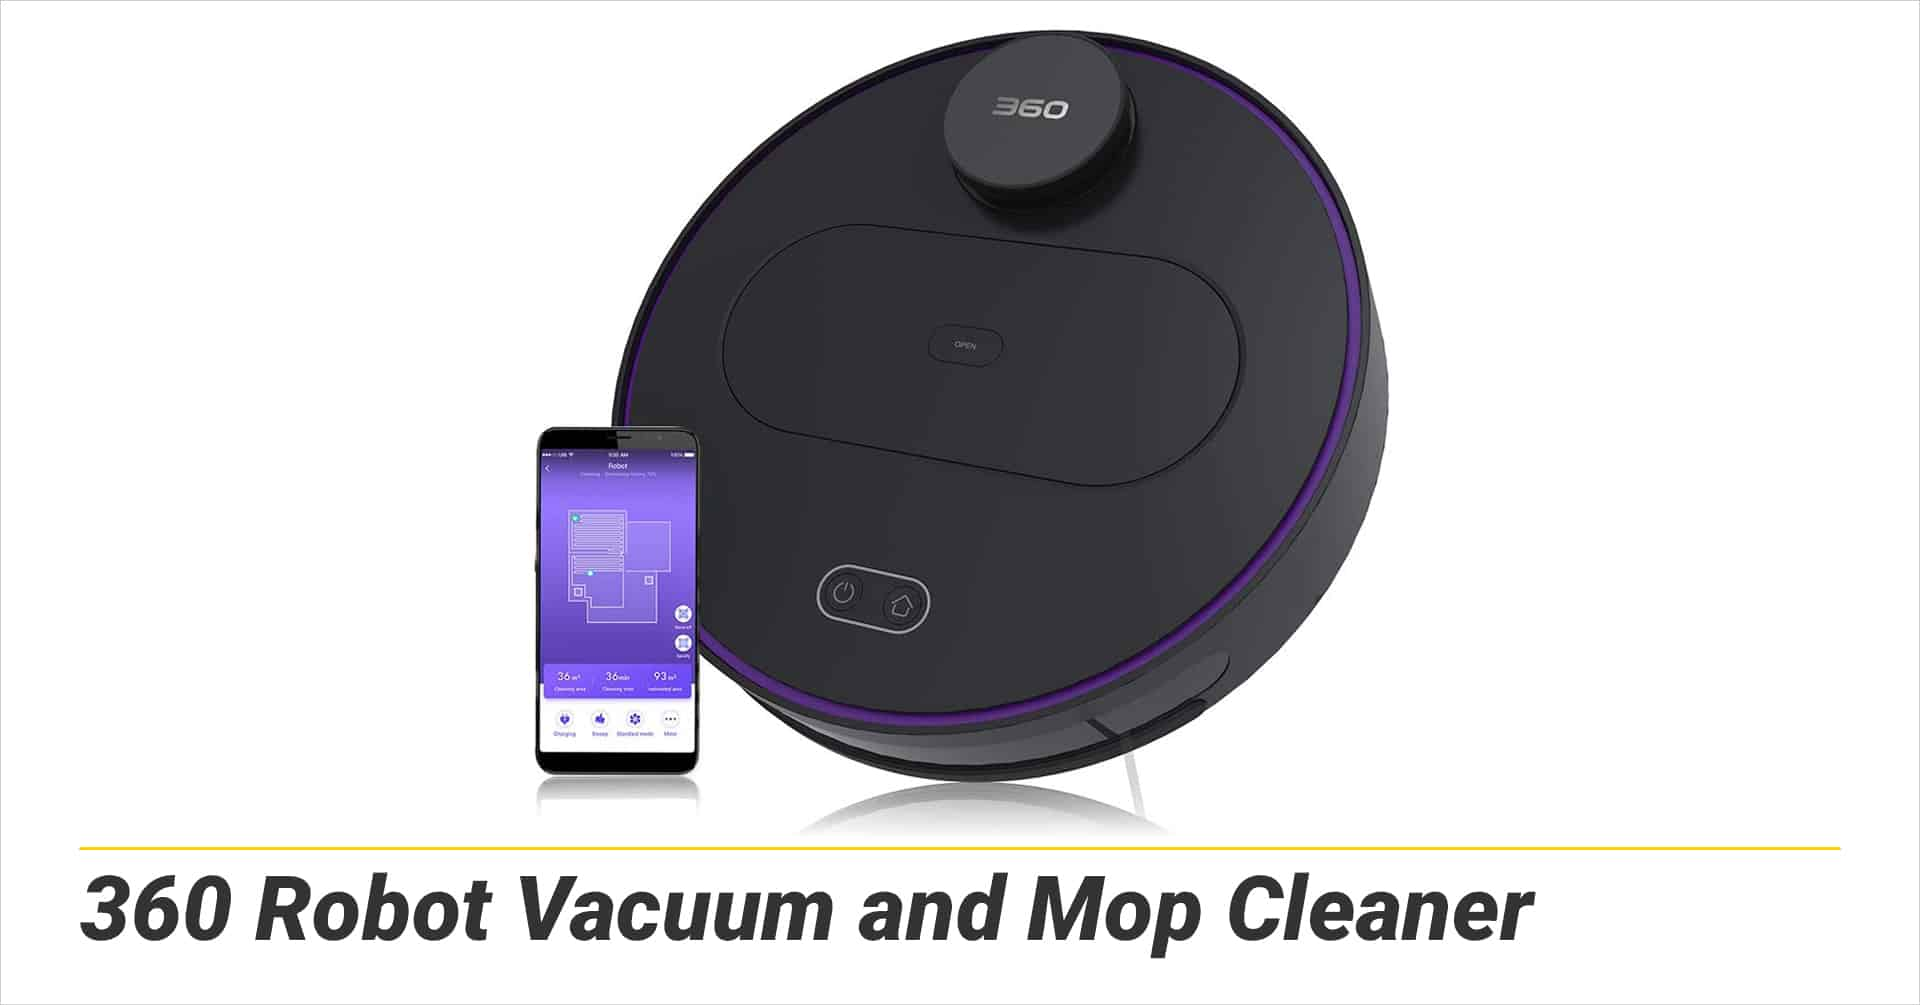 360 Robot Vacuum and Mop Cleaner